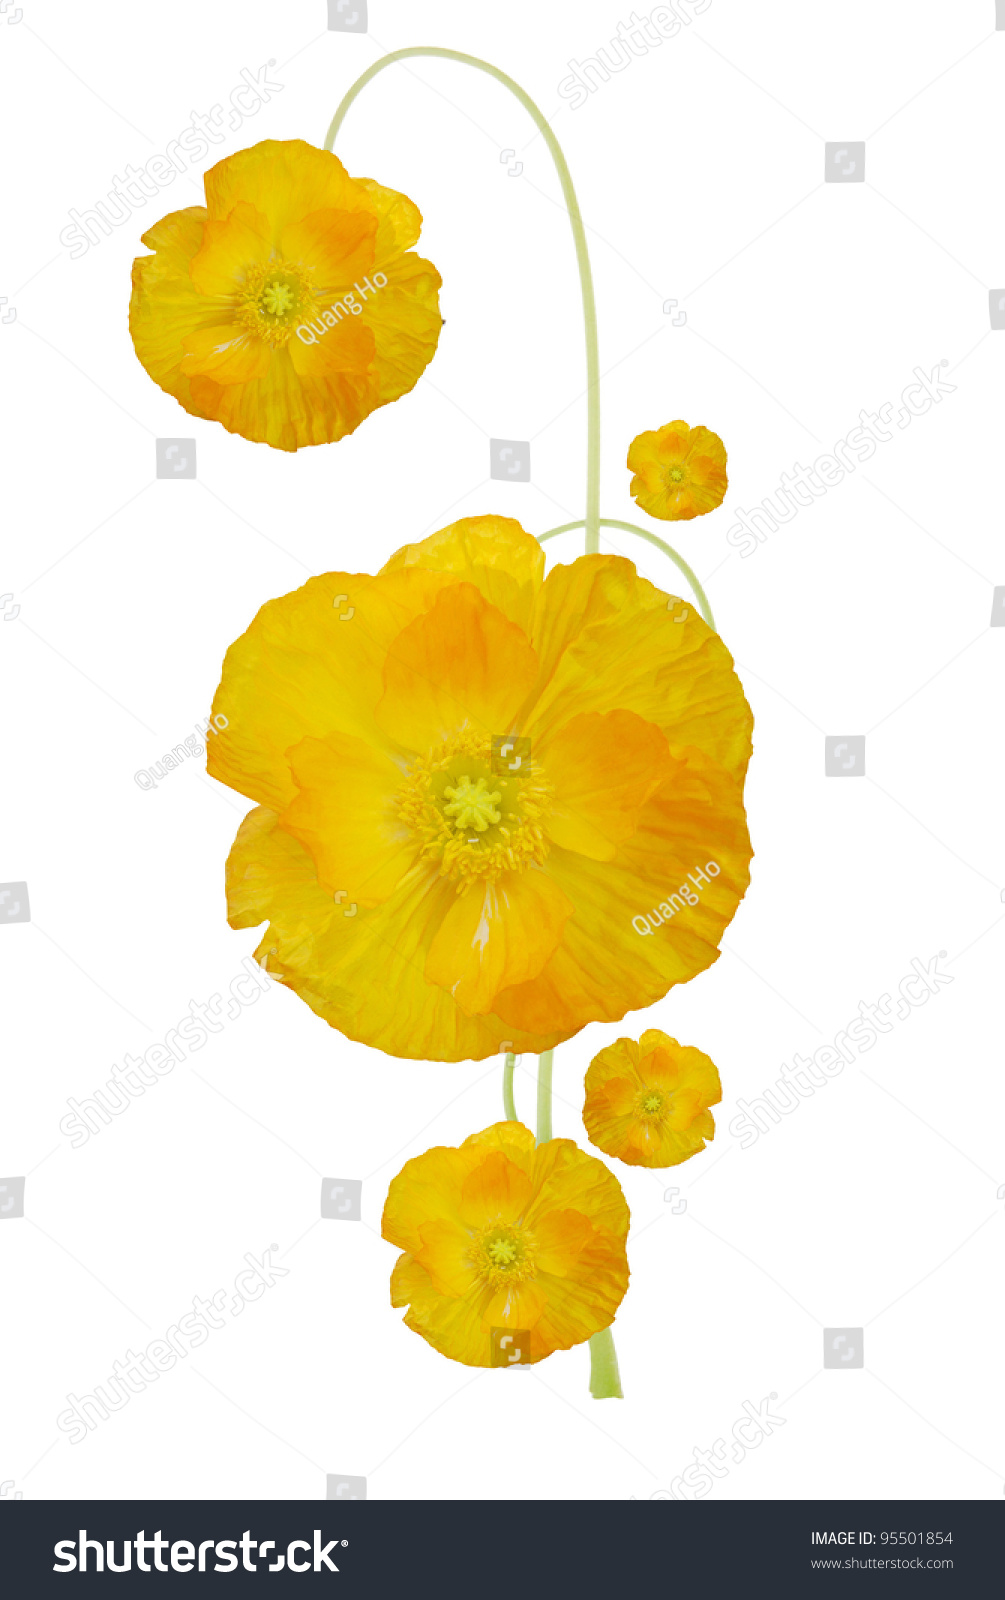 Golden Poppy Flower Symbolic Stock Photo 95501854 Shutterstock